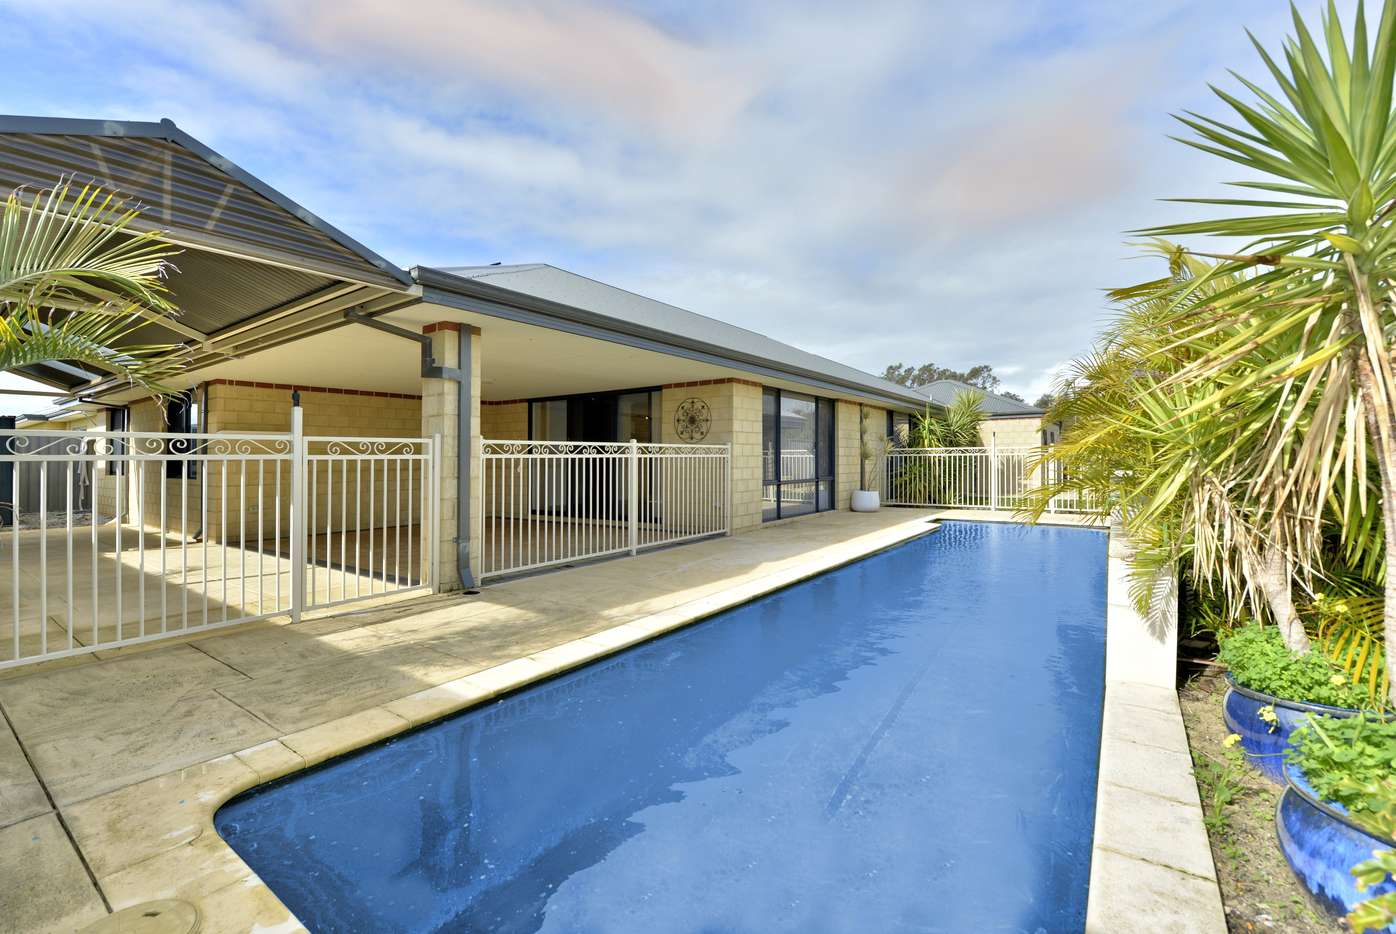 Main view of Homely house listing, 86 Countess Circuit, South Yunderup, WA 6208